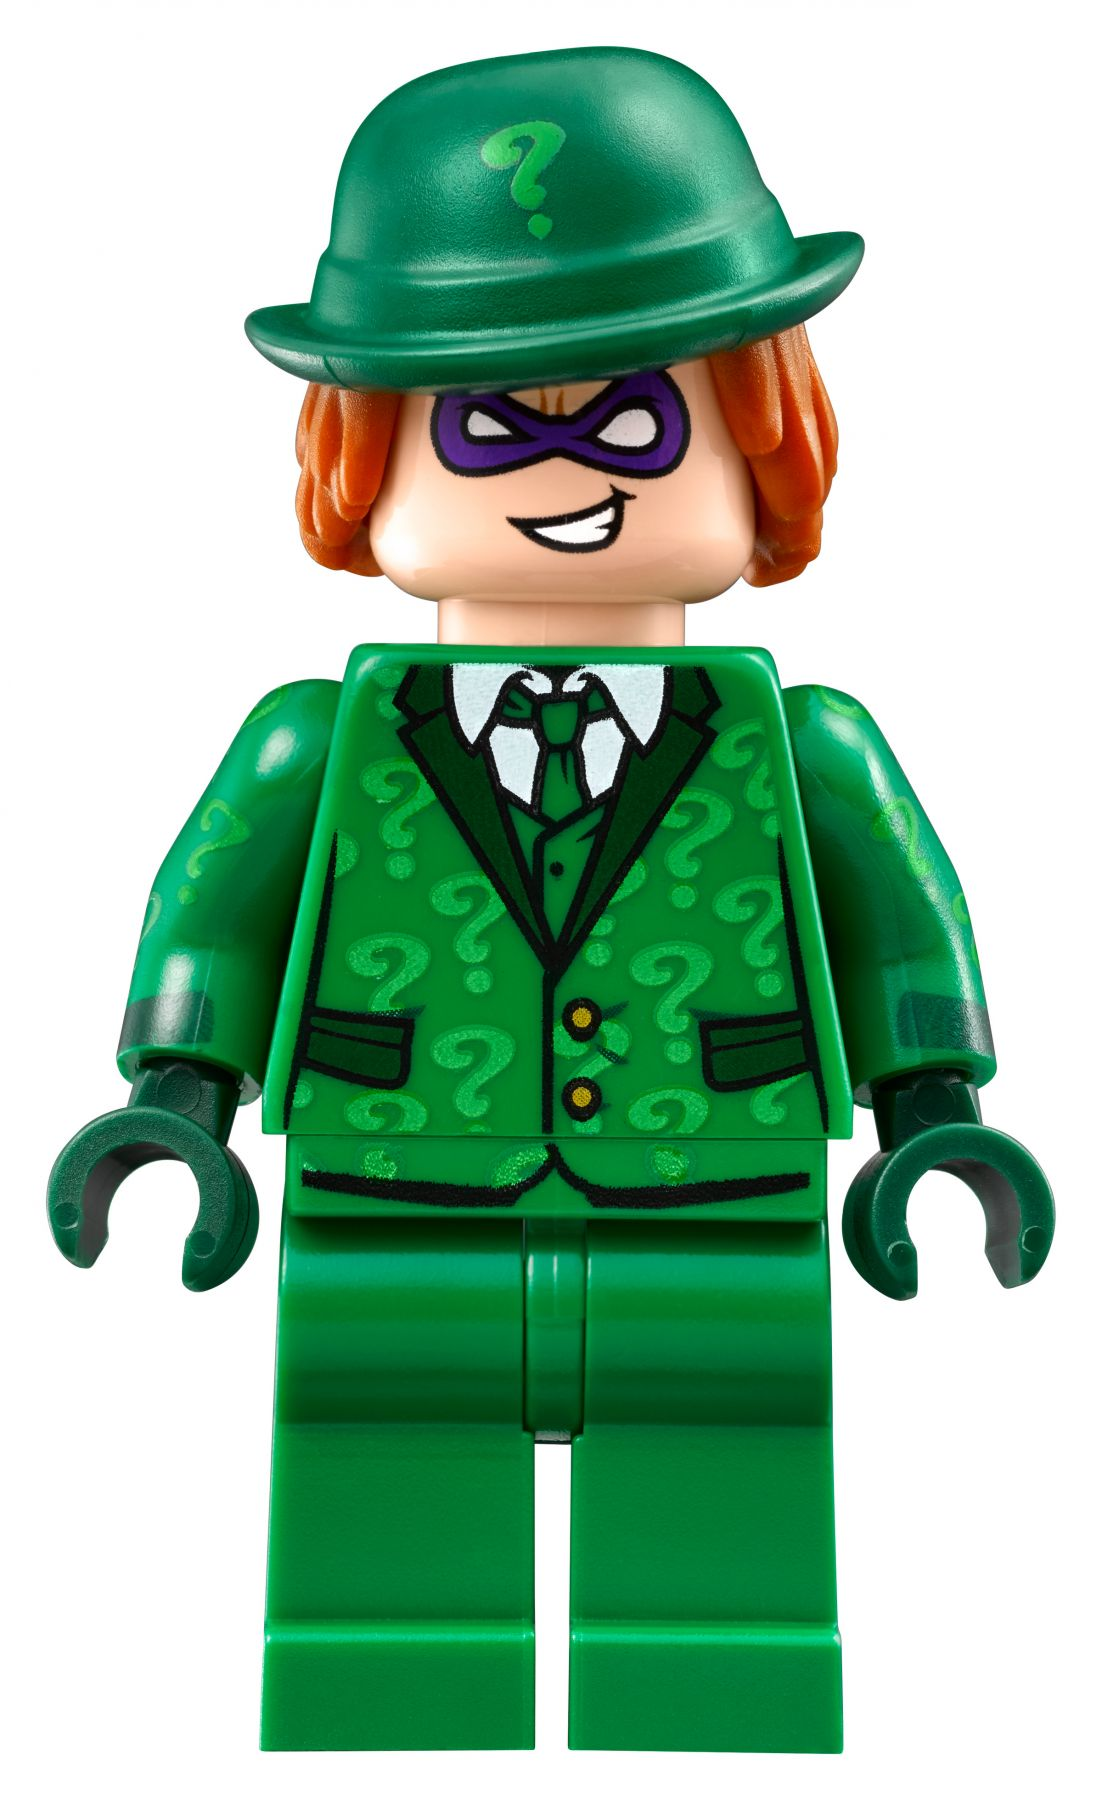 LEGO The LEGO Batman Movie 70903 The Riddler™: Riddle Racer LEGO_70903_alt7.jpg